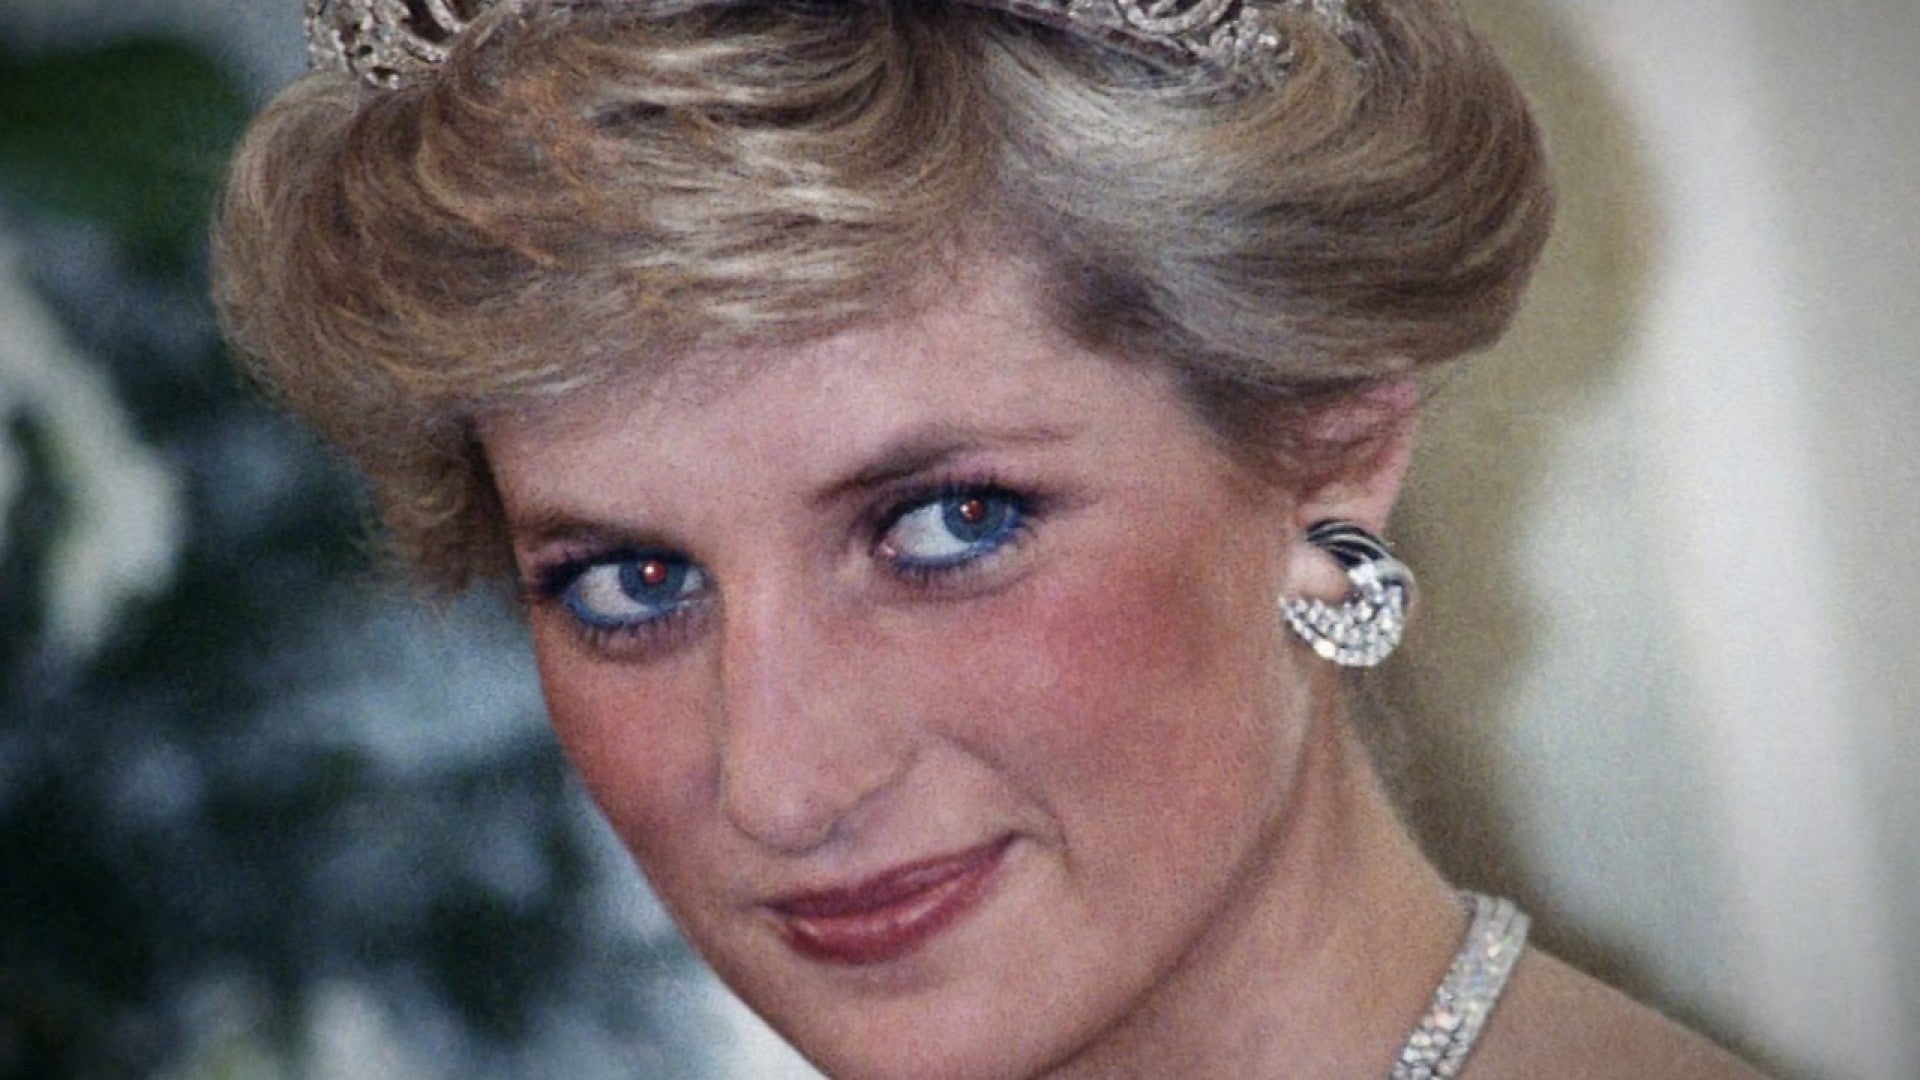 Prince William And Prince Harry Rededicate Princess Diana S Grave On What Would Have Been Her 56th Birthday Entertainment Tonight